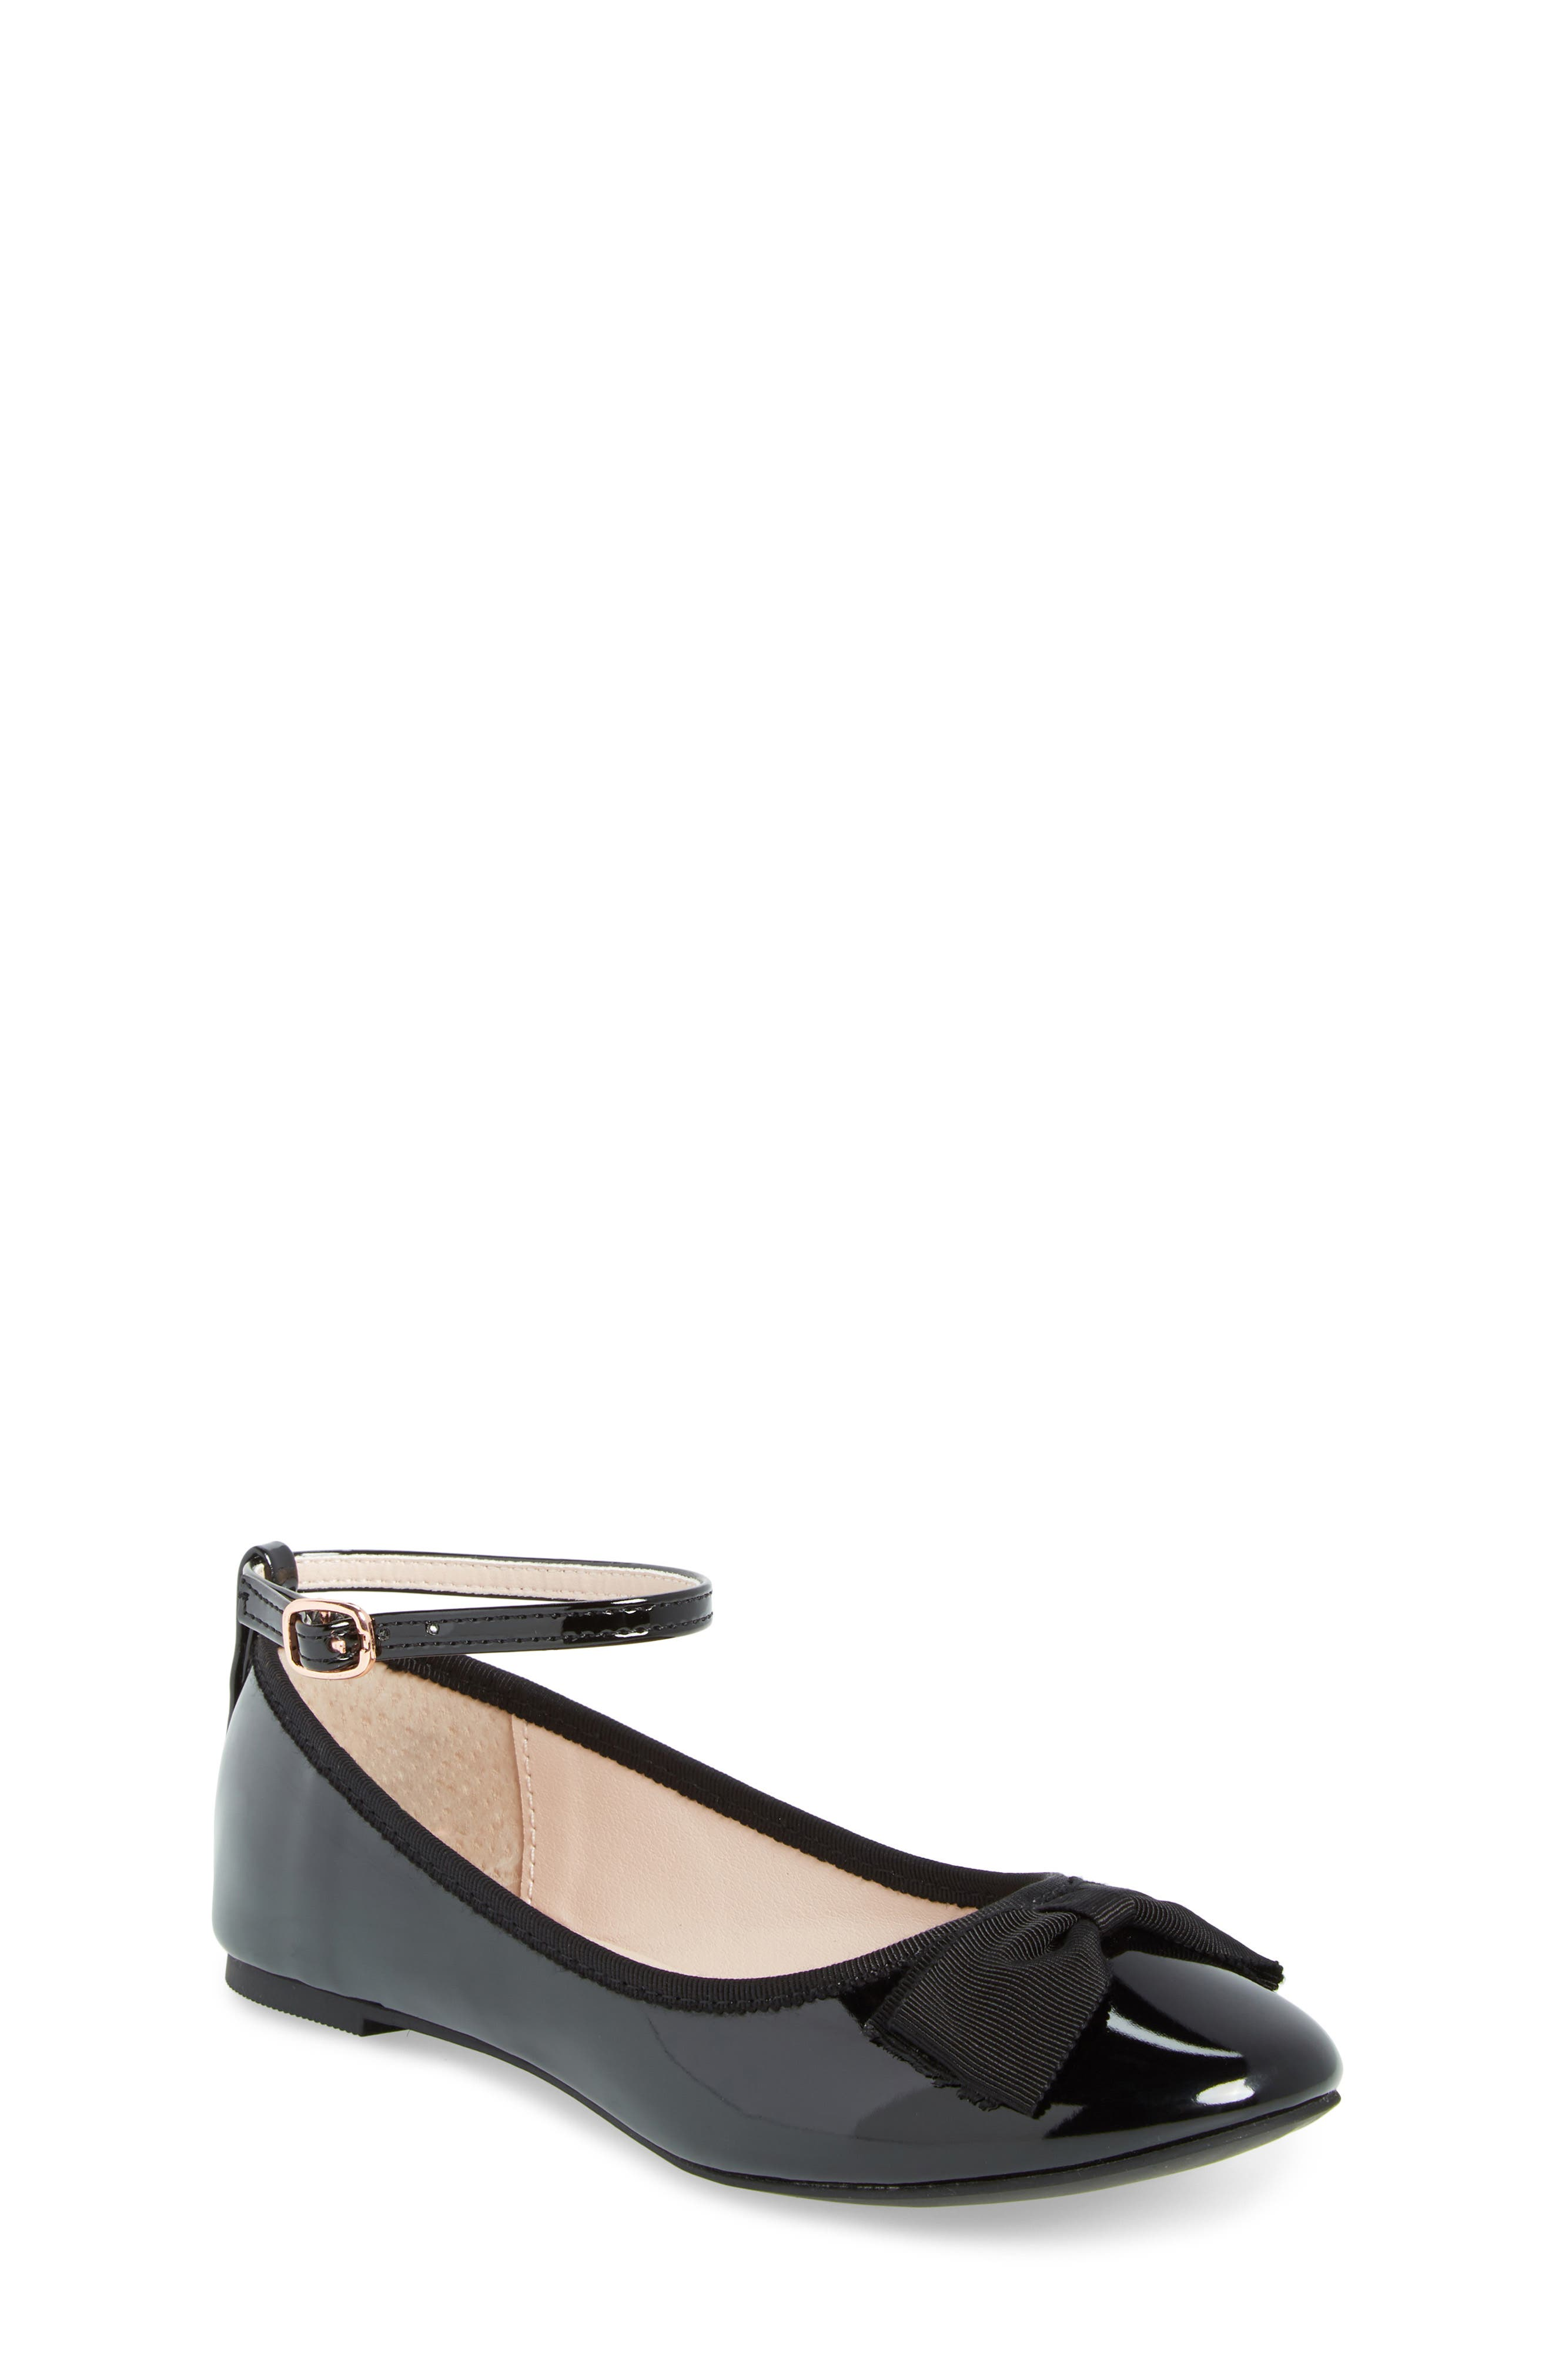 RUBY & BLOOM, Pipa Ankle Strap Ballet Flat, Main thumbnail 1, color, BLACK FAUX PATENT